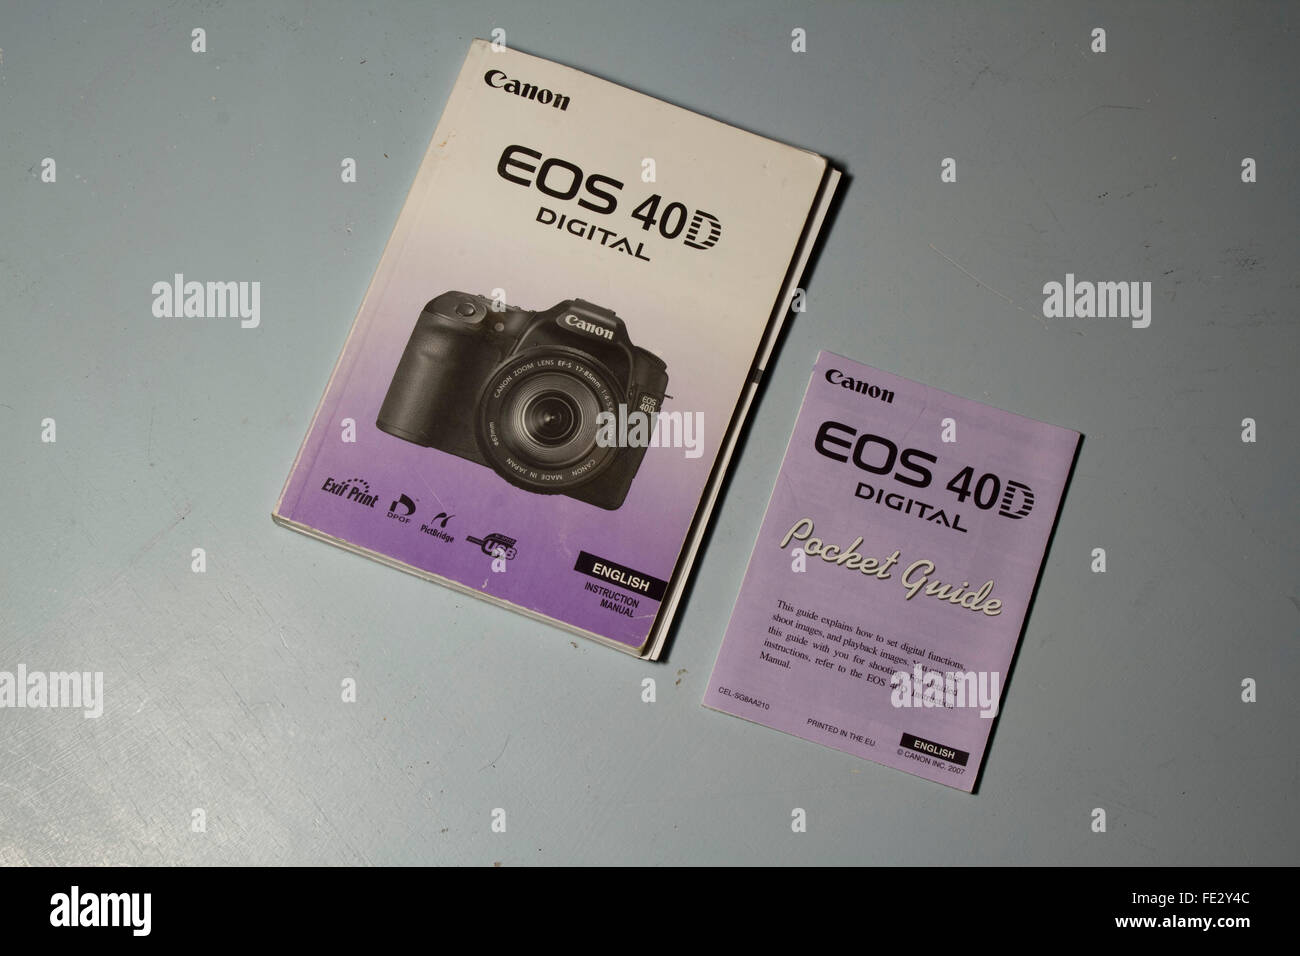 user manual and pocket guide for canon 40d dslr camera stock photo rh alamy com Canon 77D Canon 77D